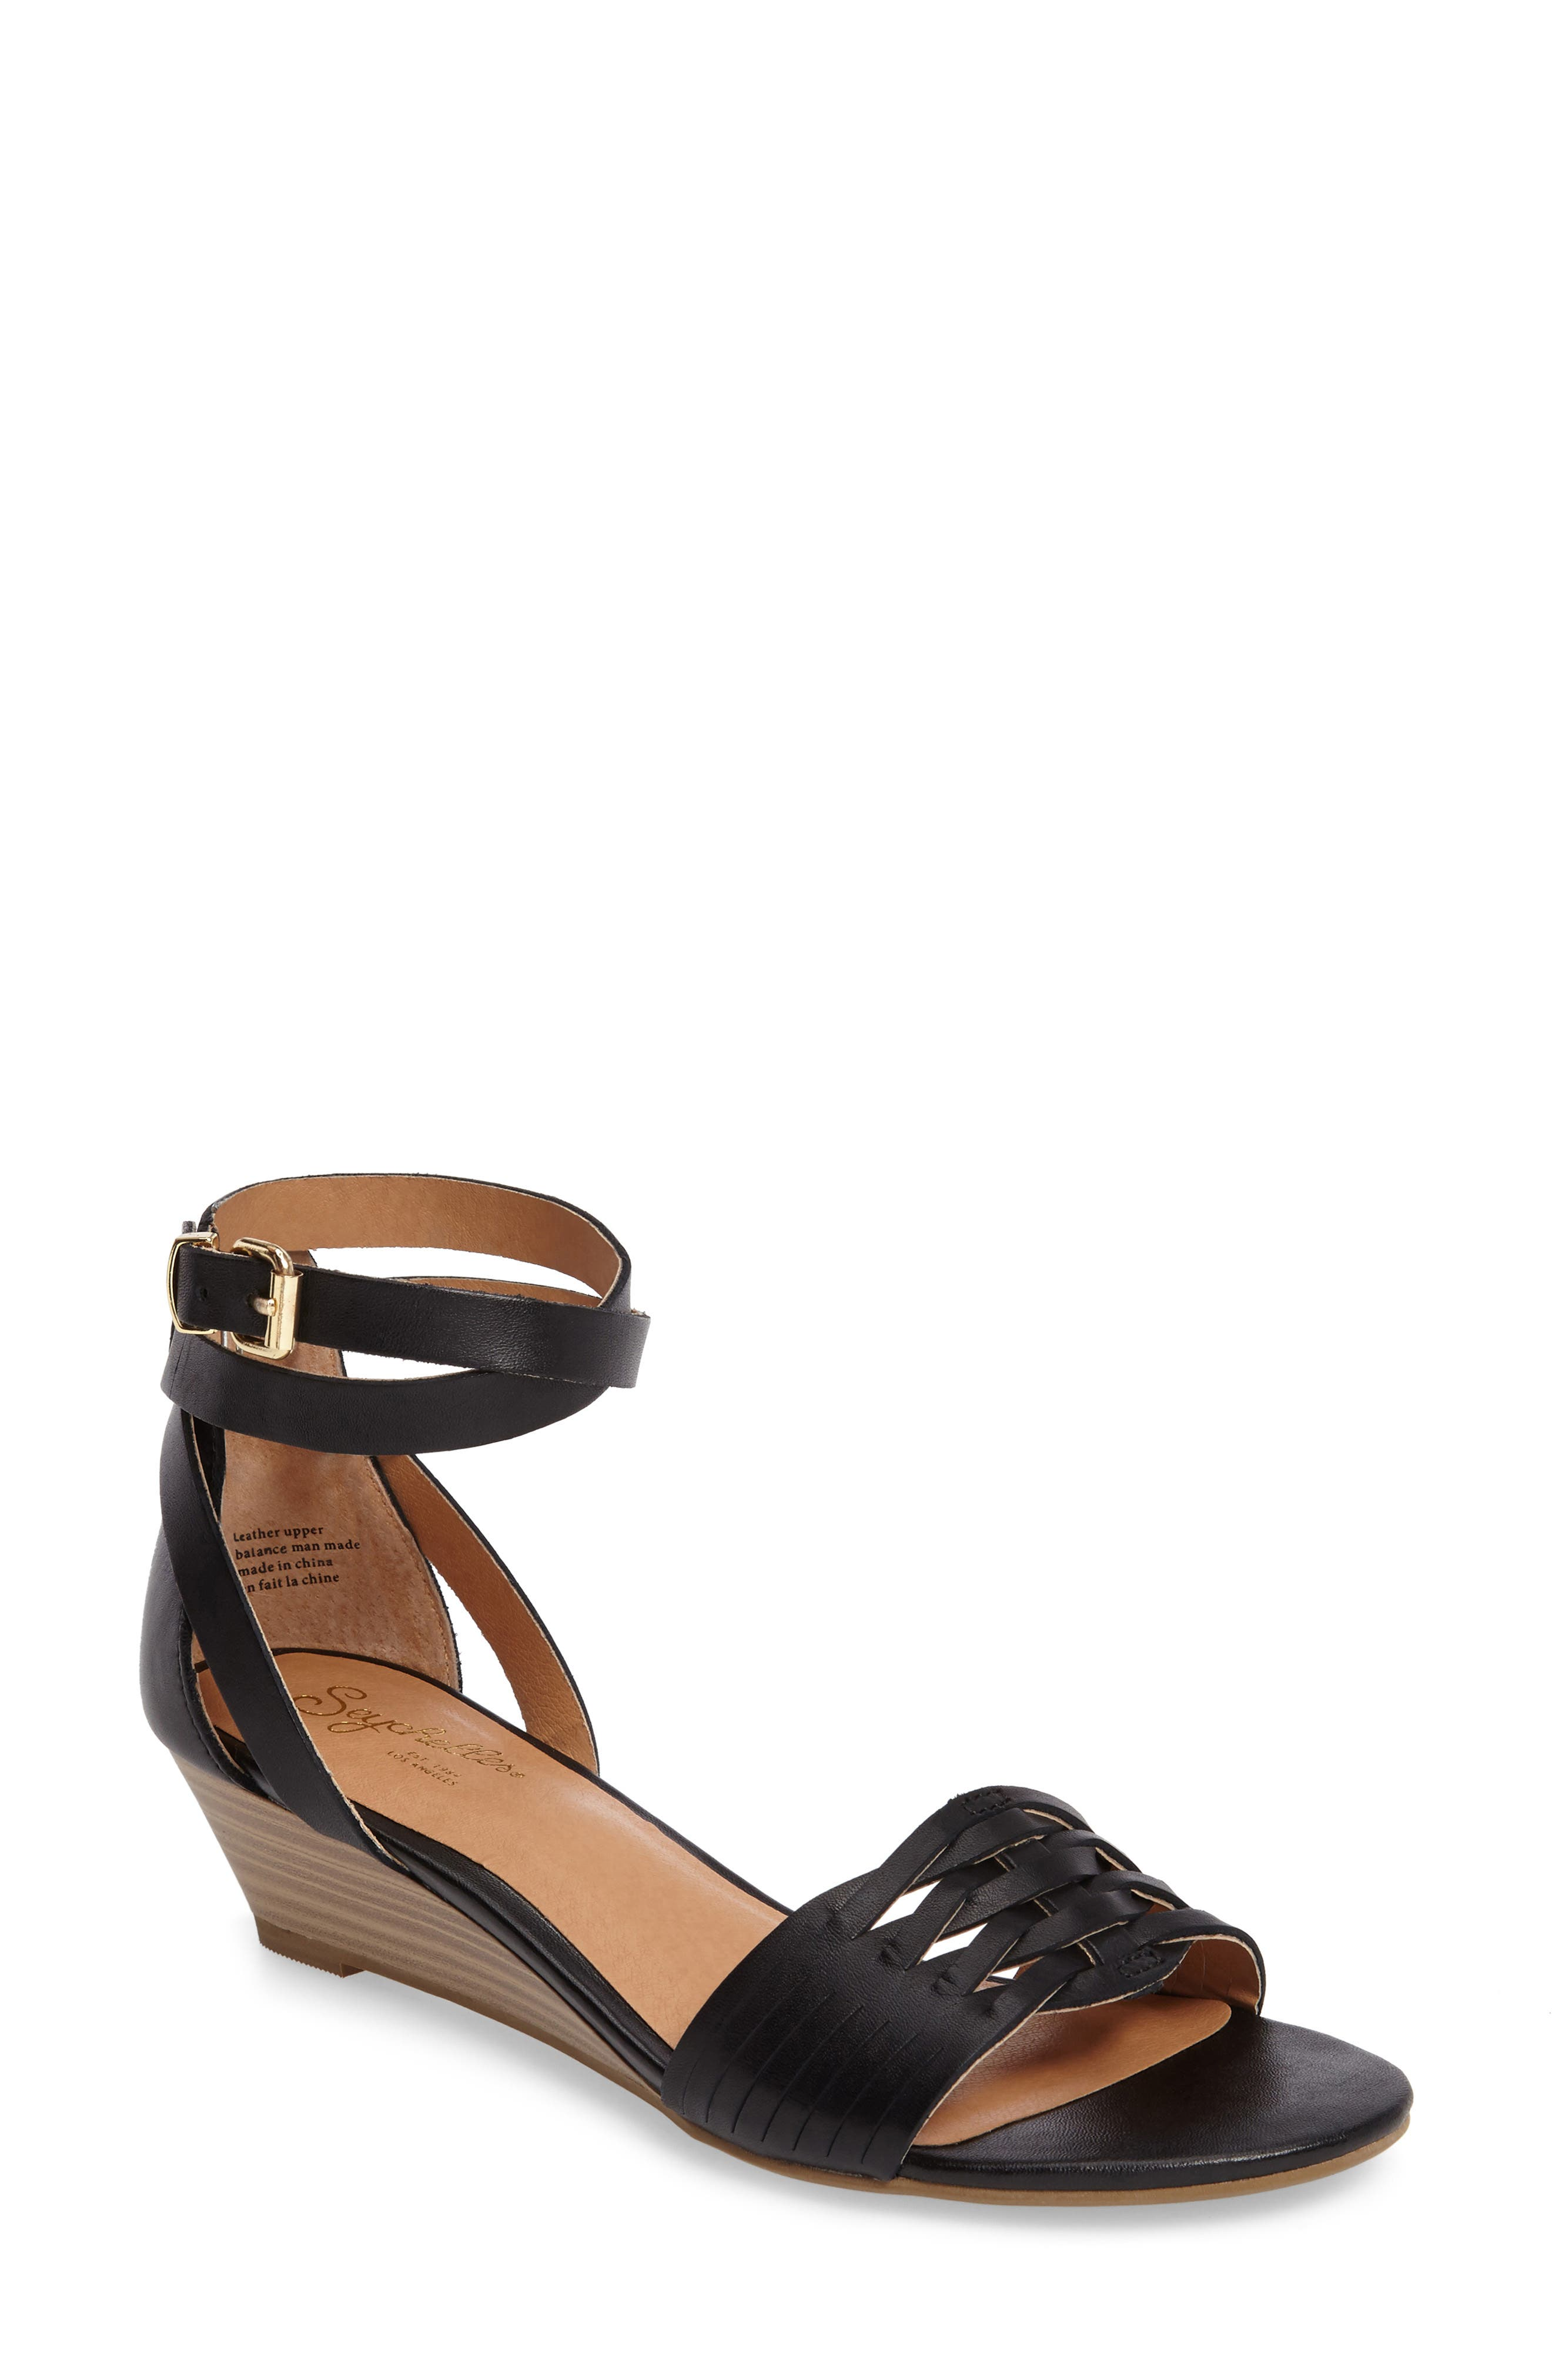 Alternate Image 1 Selected - Seychelles Sincere Wraparound Wedge Sandal (Women)